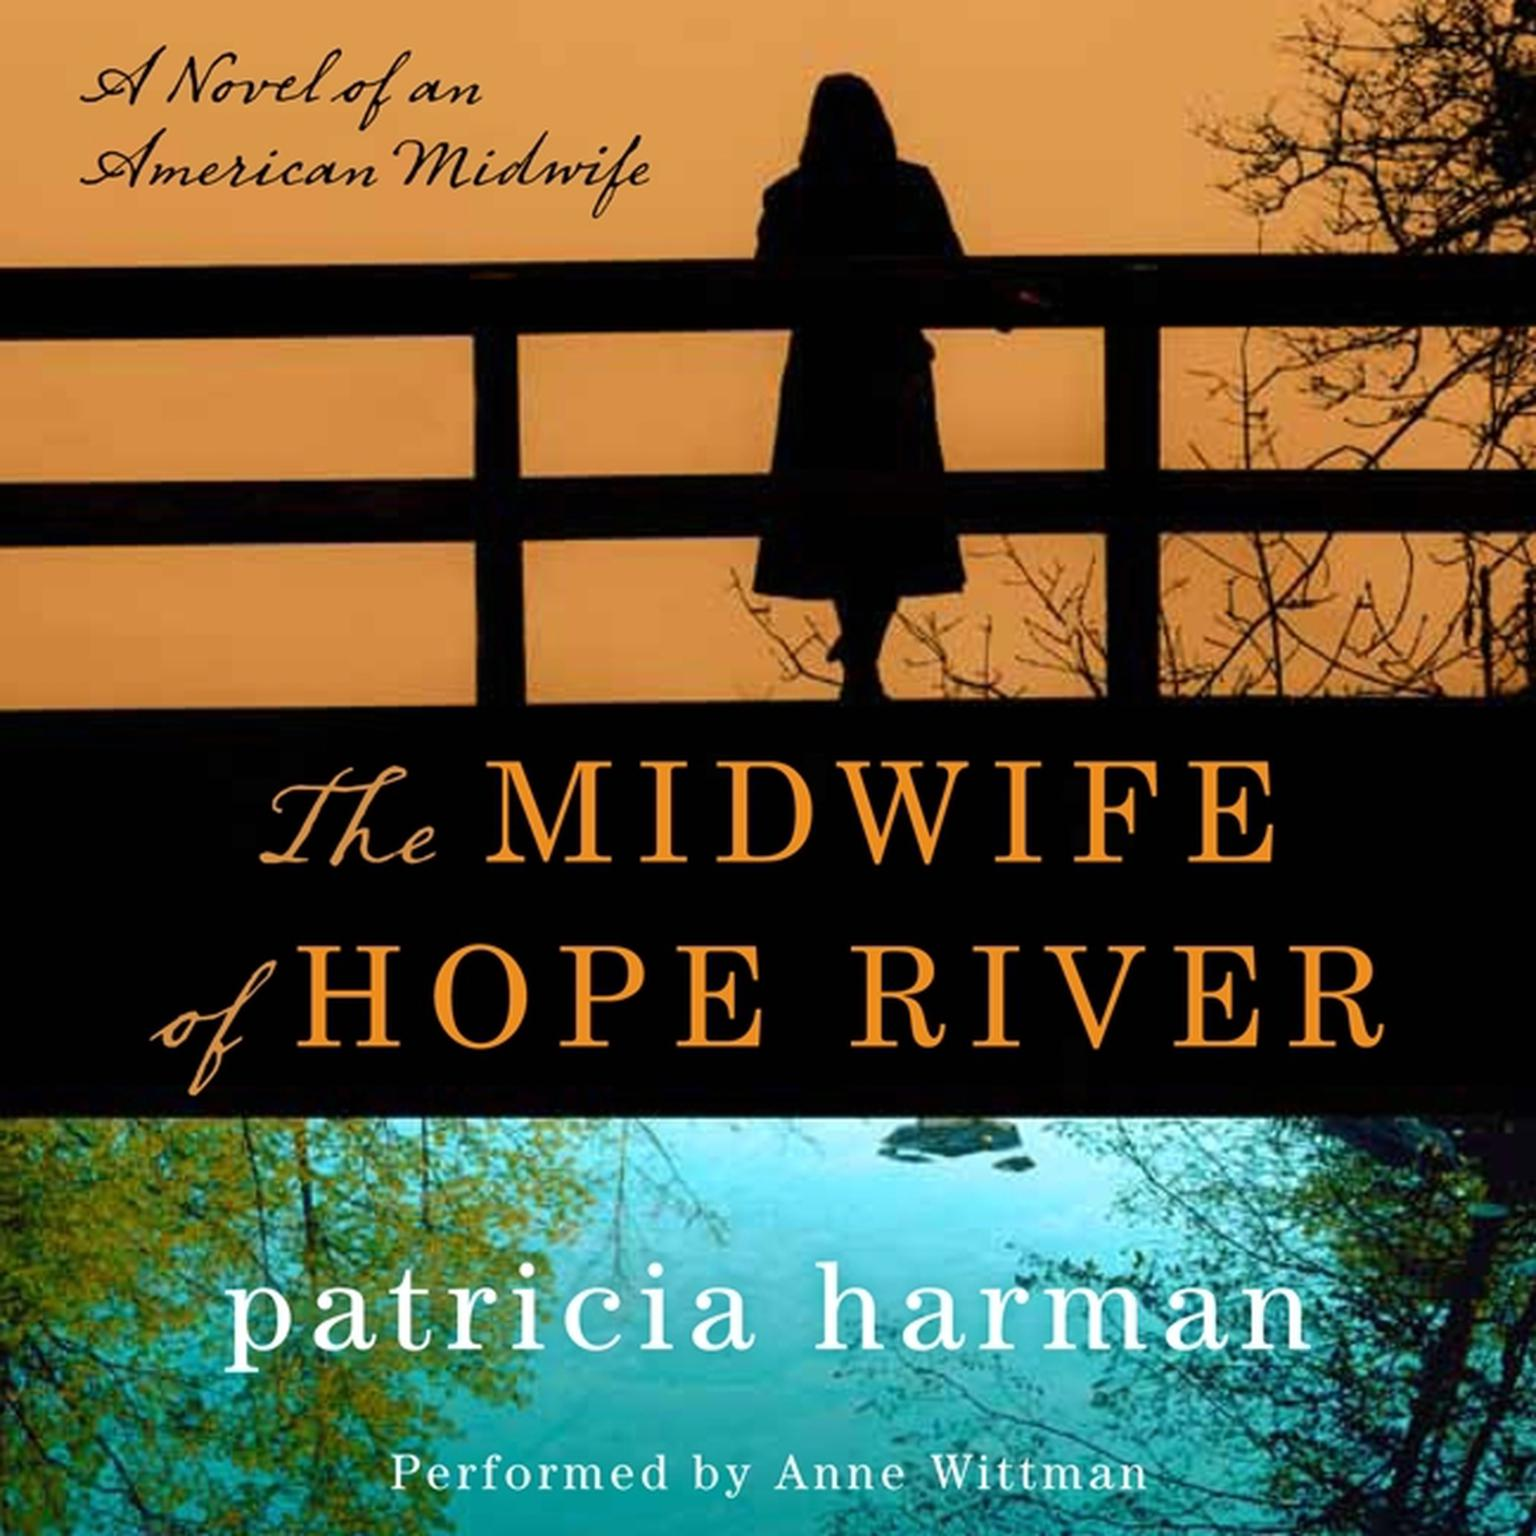 Printable The Midwife of Hope River: A Novel of an American Midwife Audiobook Cover Art